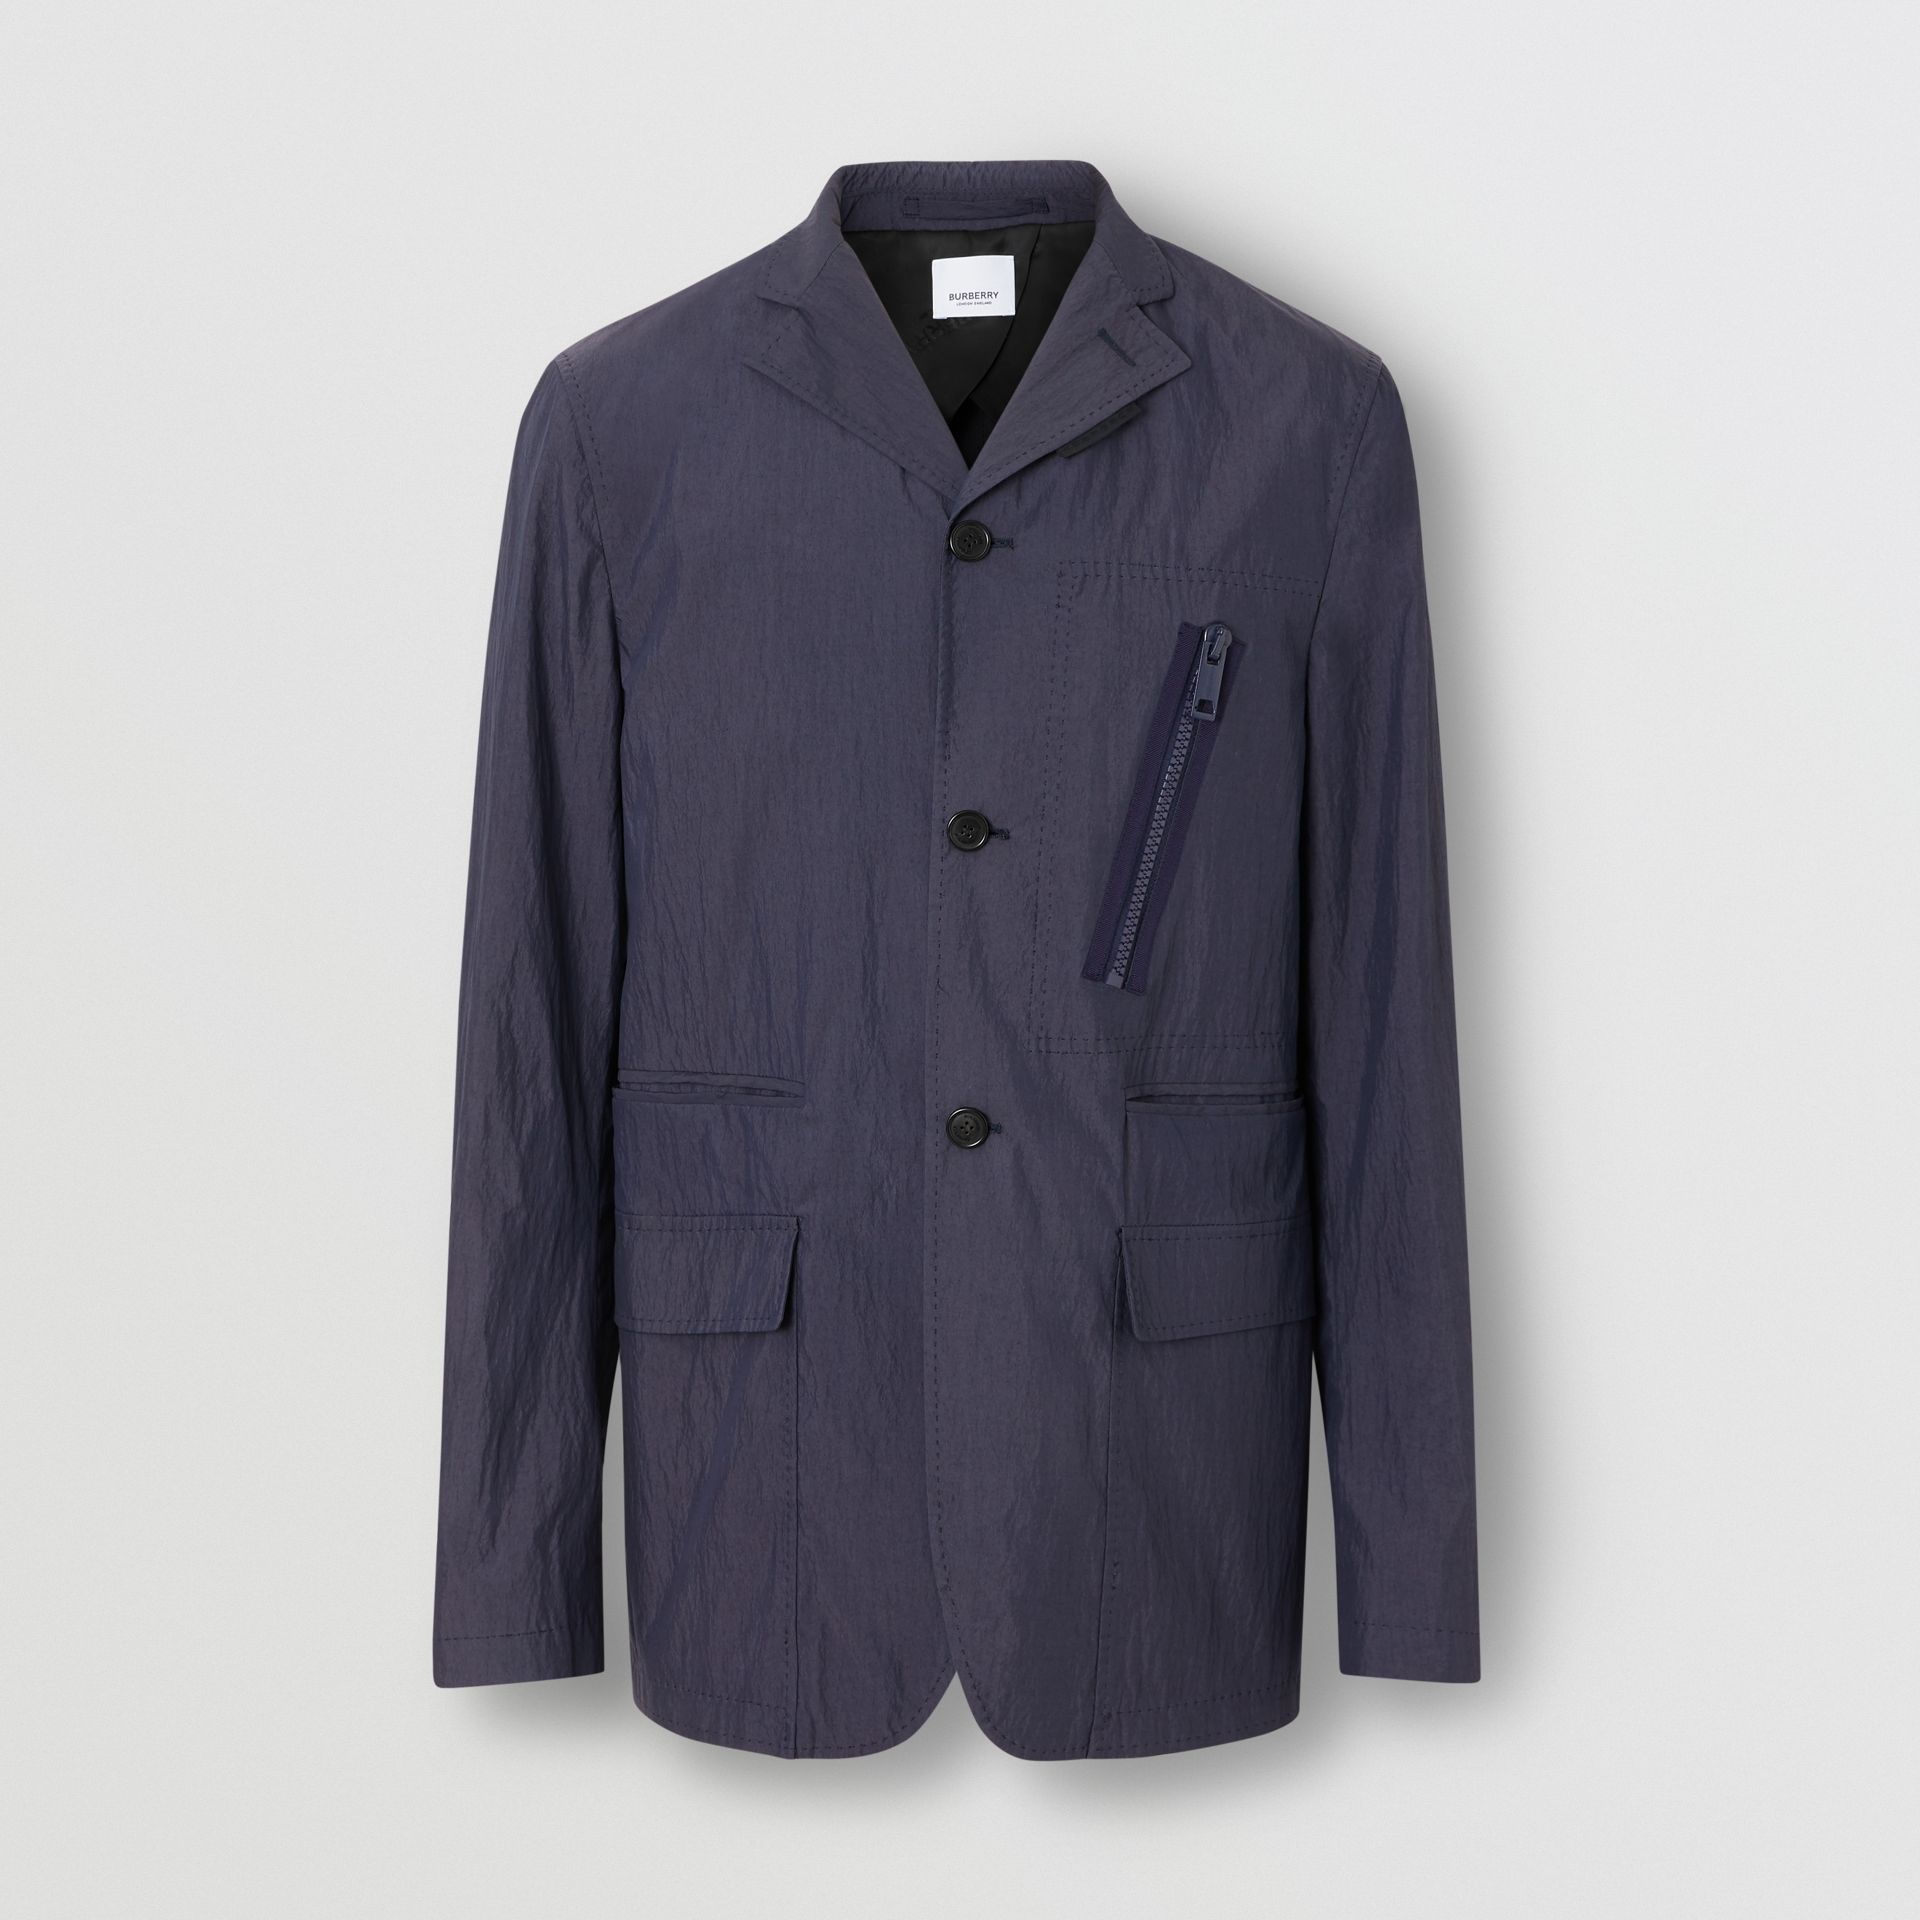 Crinkled Cotton Blend Tailored Jacket in Navy - Men | Burberry Hong Kong S.A.R - gallery image 3